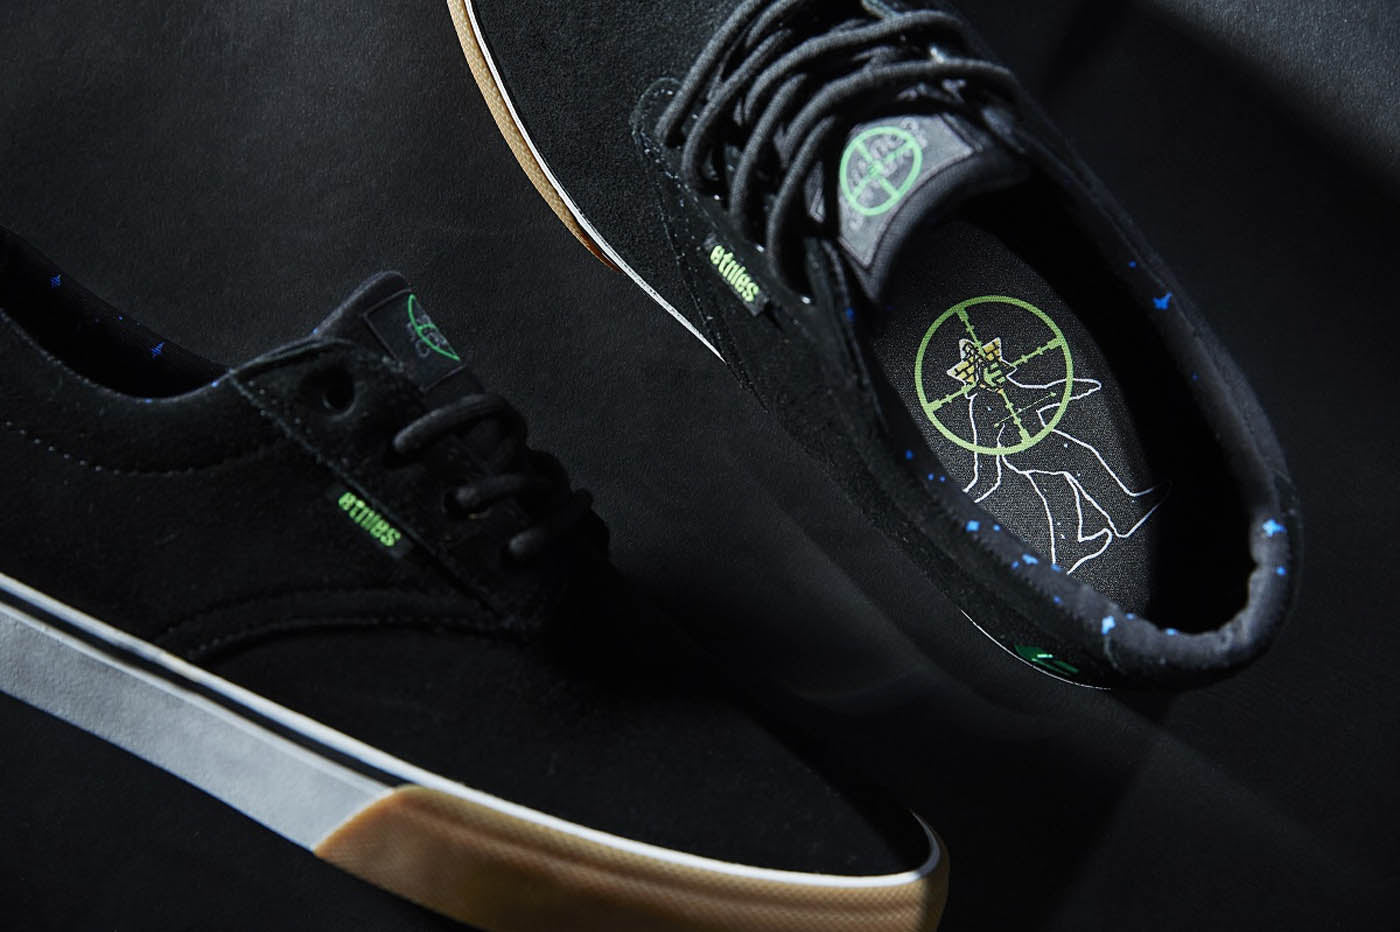 Etnies 2017 Introducing The Jameson HT X Pyramid Country Collaboration